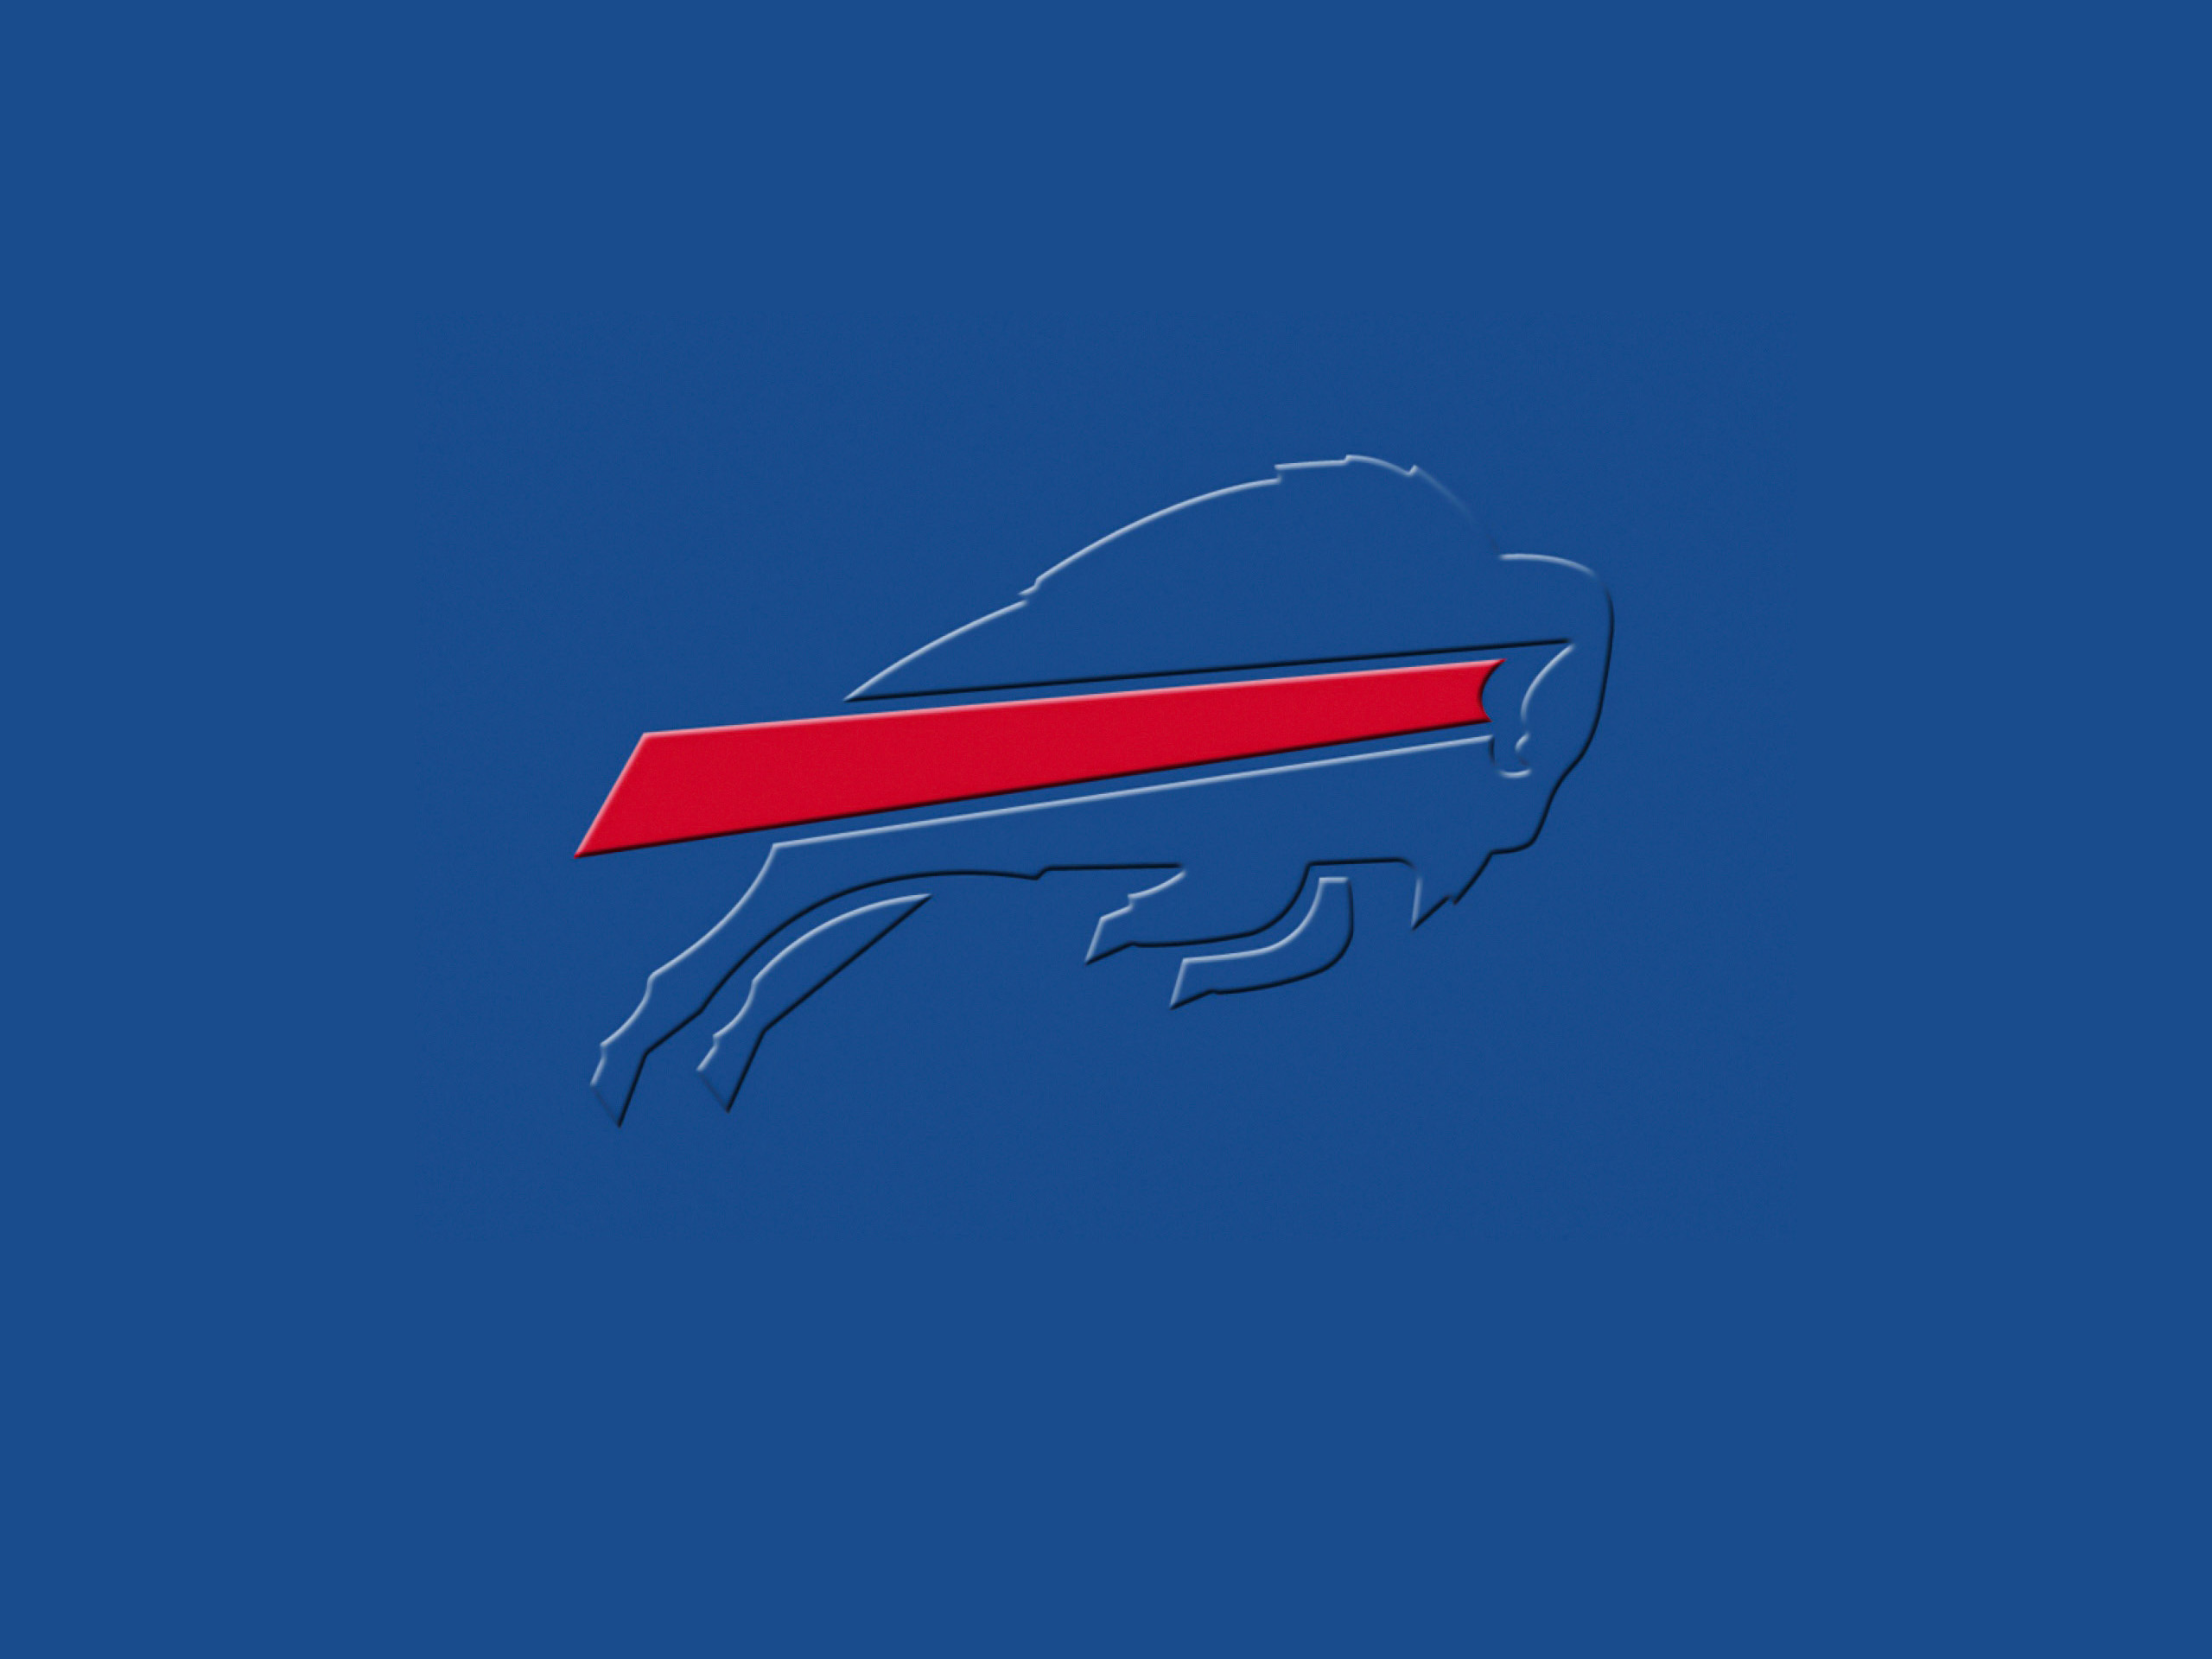 Awesome Buffalo Bills wallpaper Buffalo Bills wallpapers 2560x1920